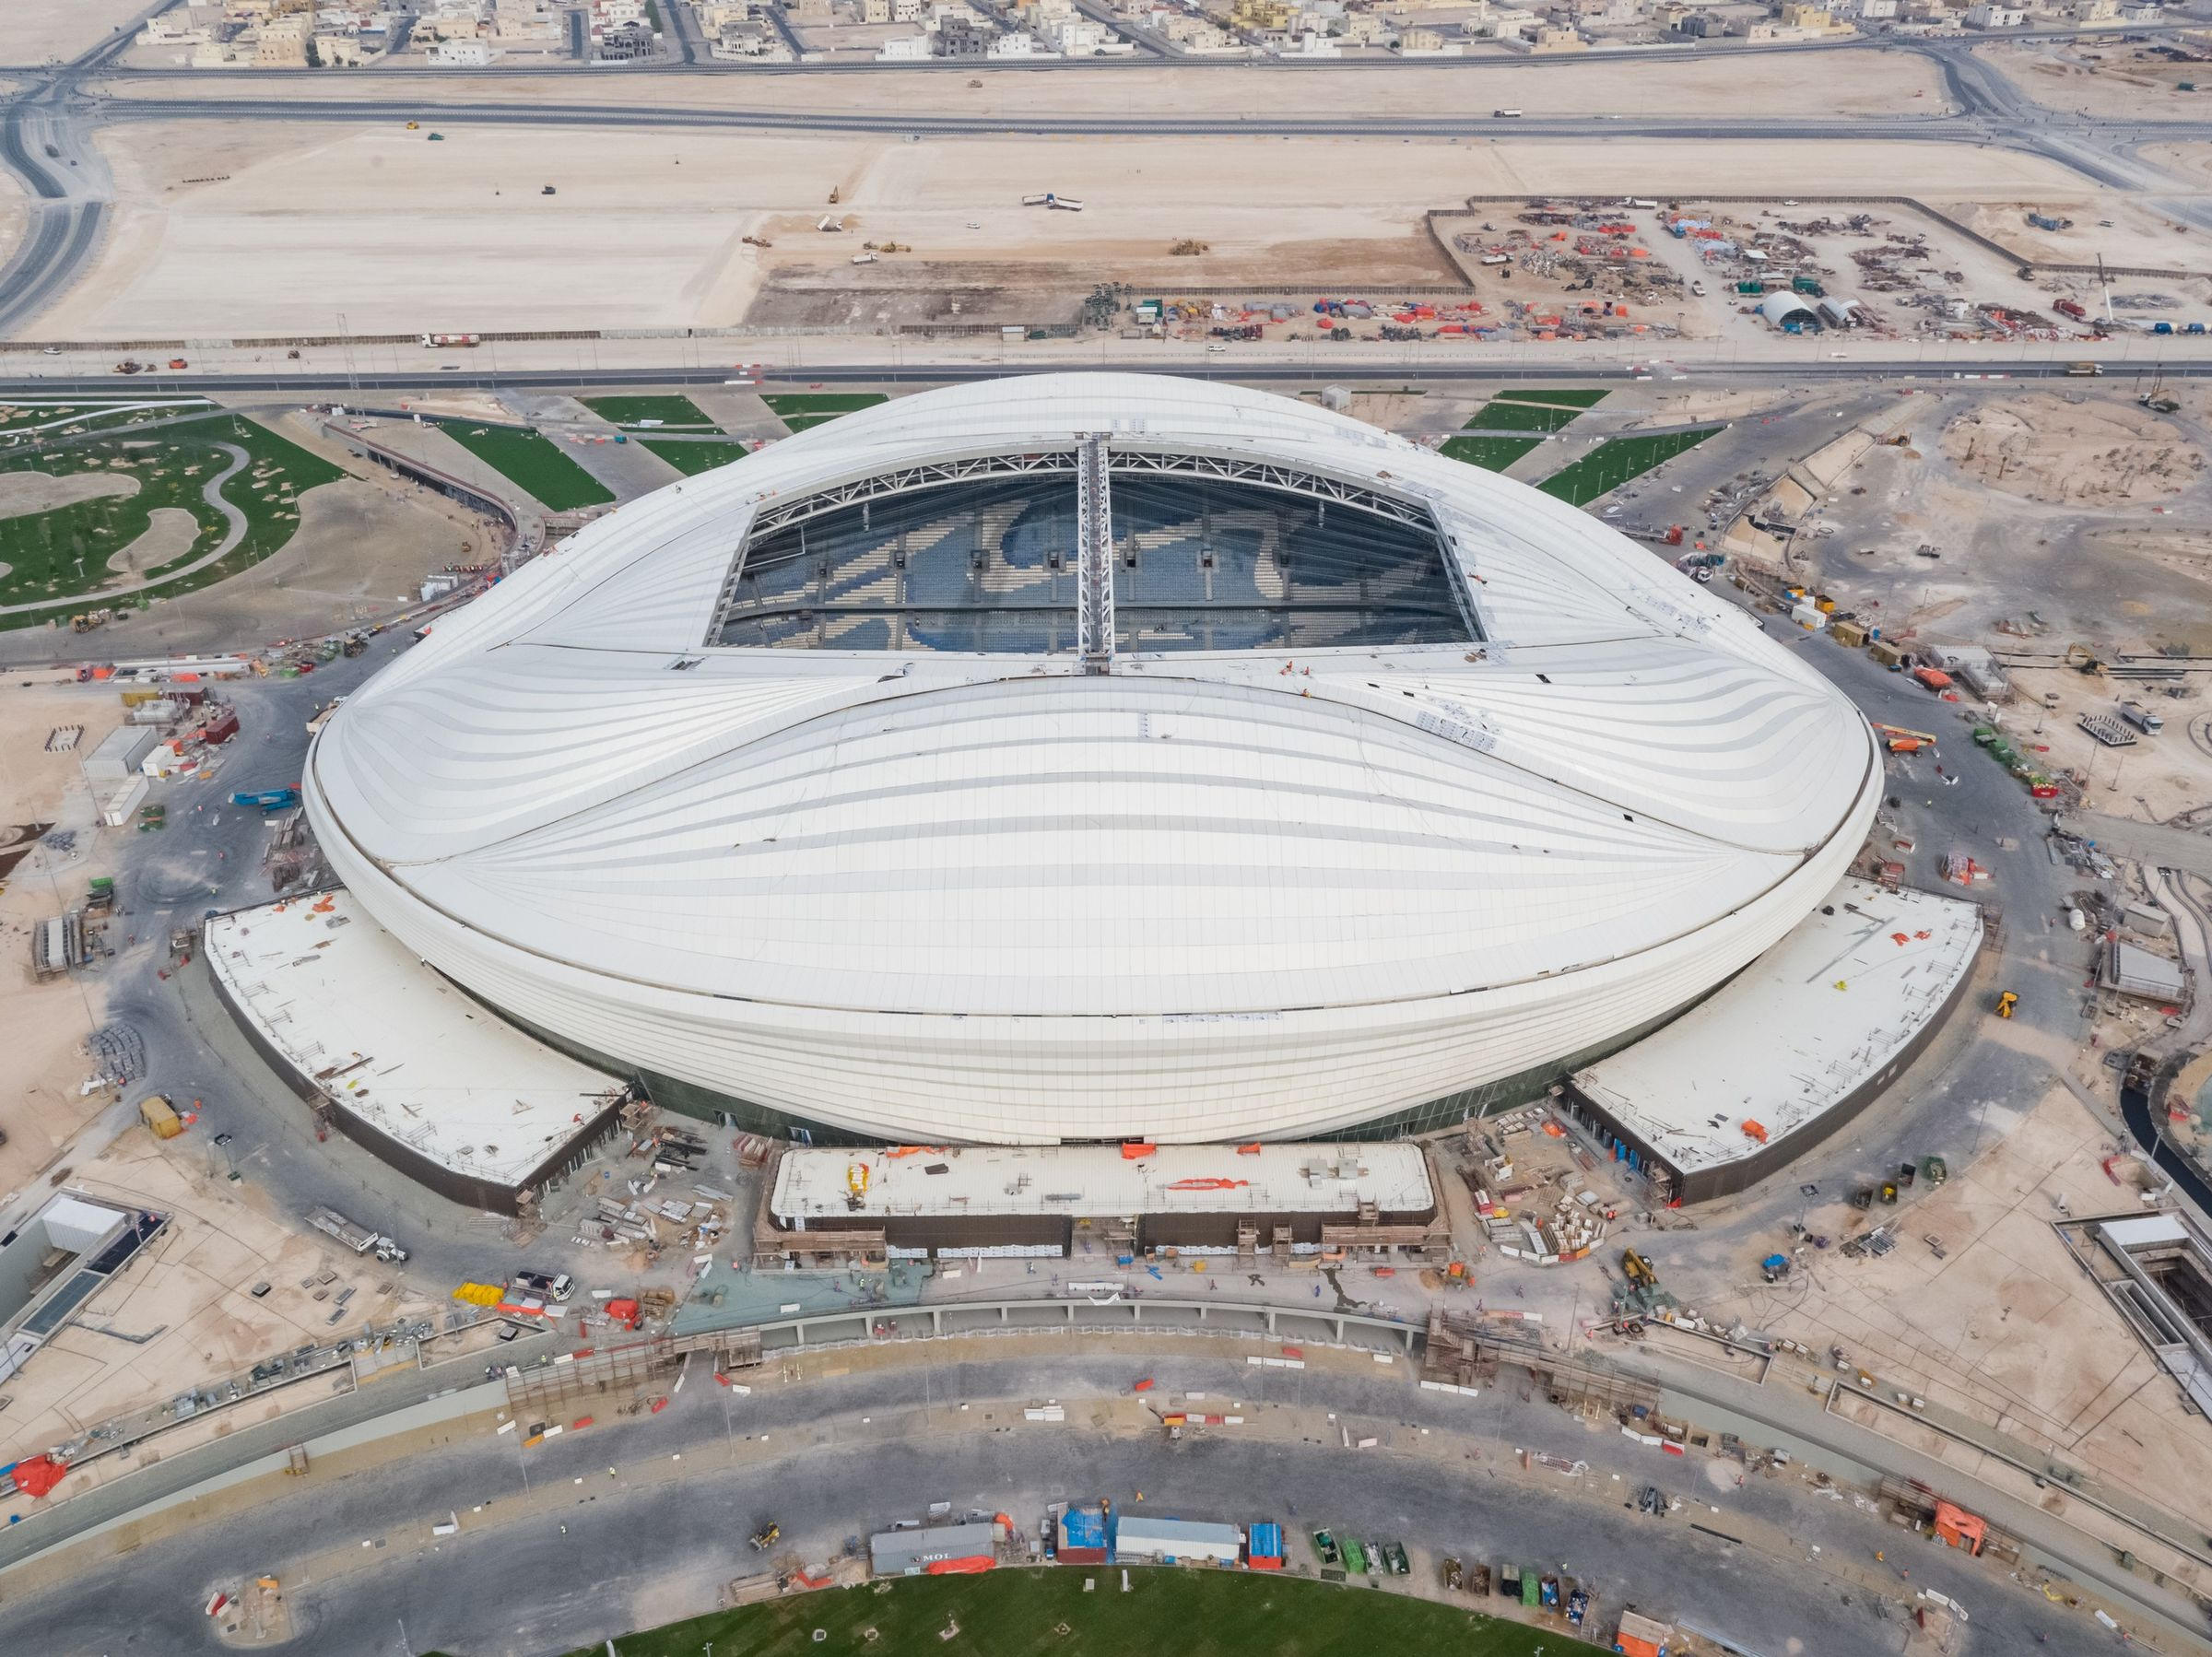 , Towards a sustainable 2022 FIFA World Cup in Qatar: Evaluation of wind energy potential for three football stadiums, The Circular Economy